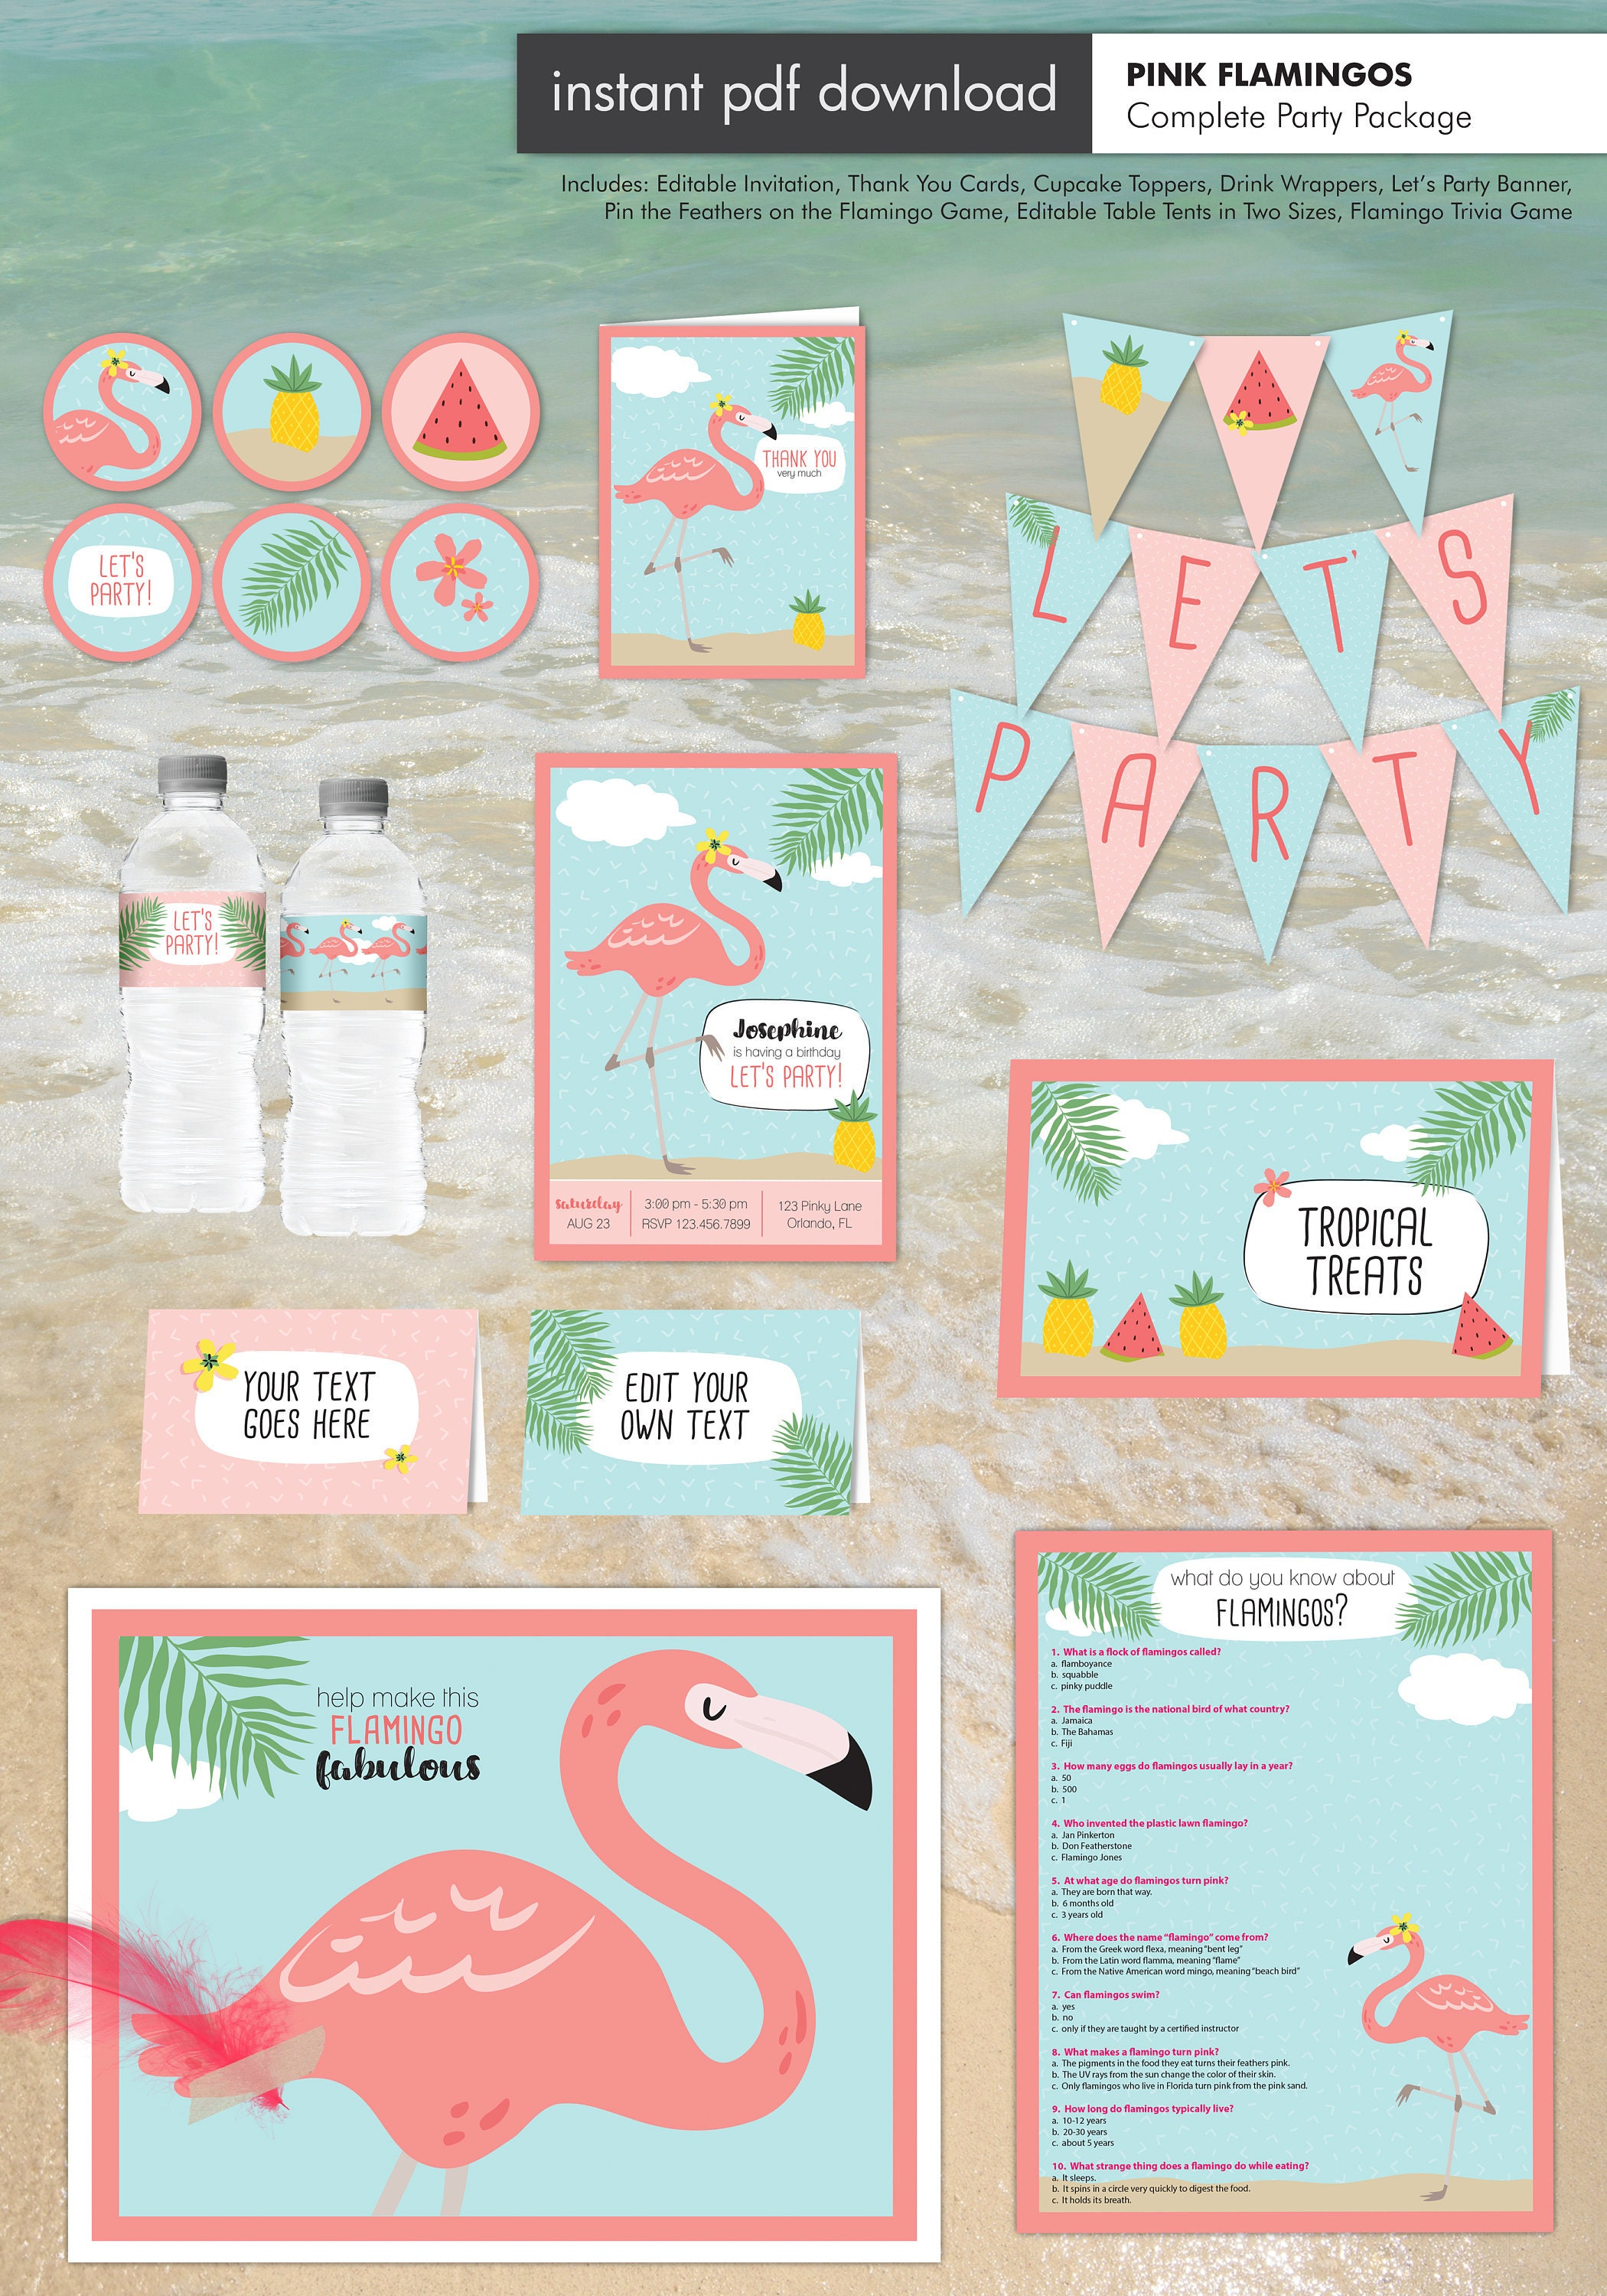 Pink Flamingo Tropical Theme Party Invitations with Decorations - 9 Piece  Printable Party Package - Instant Download with Editable Text